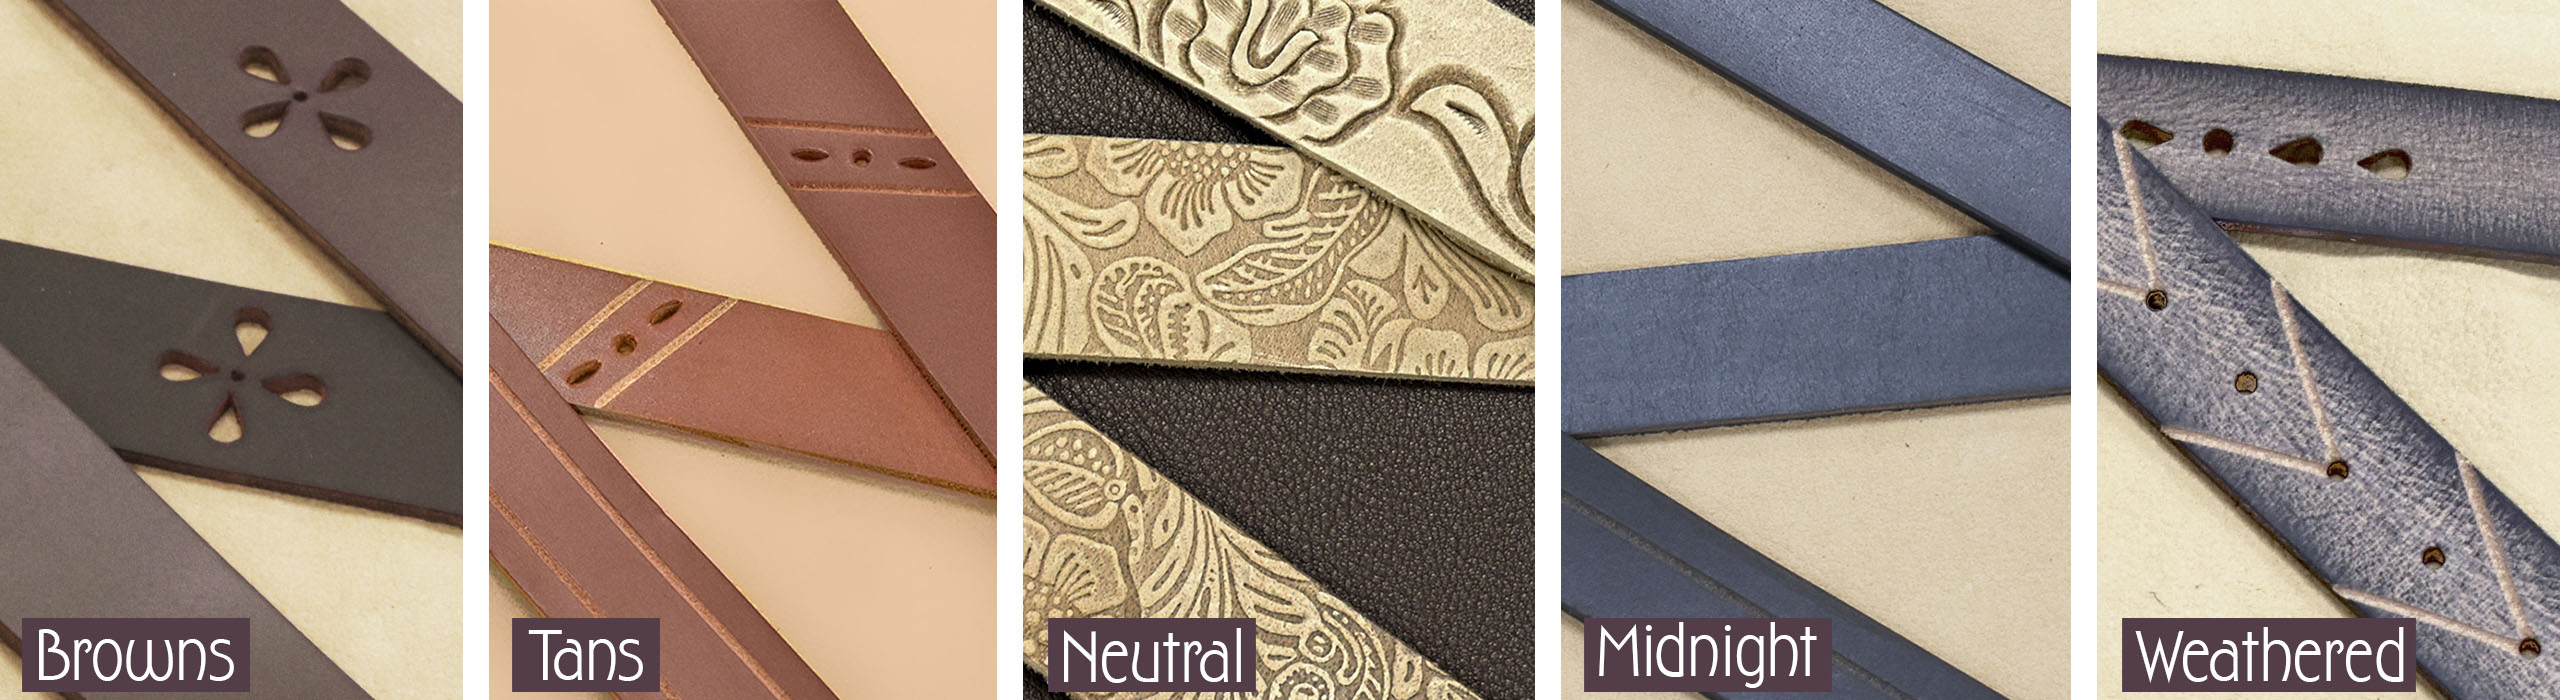 keleen leathers wall design belting leather